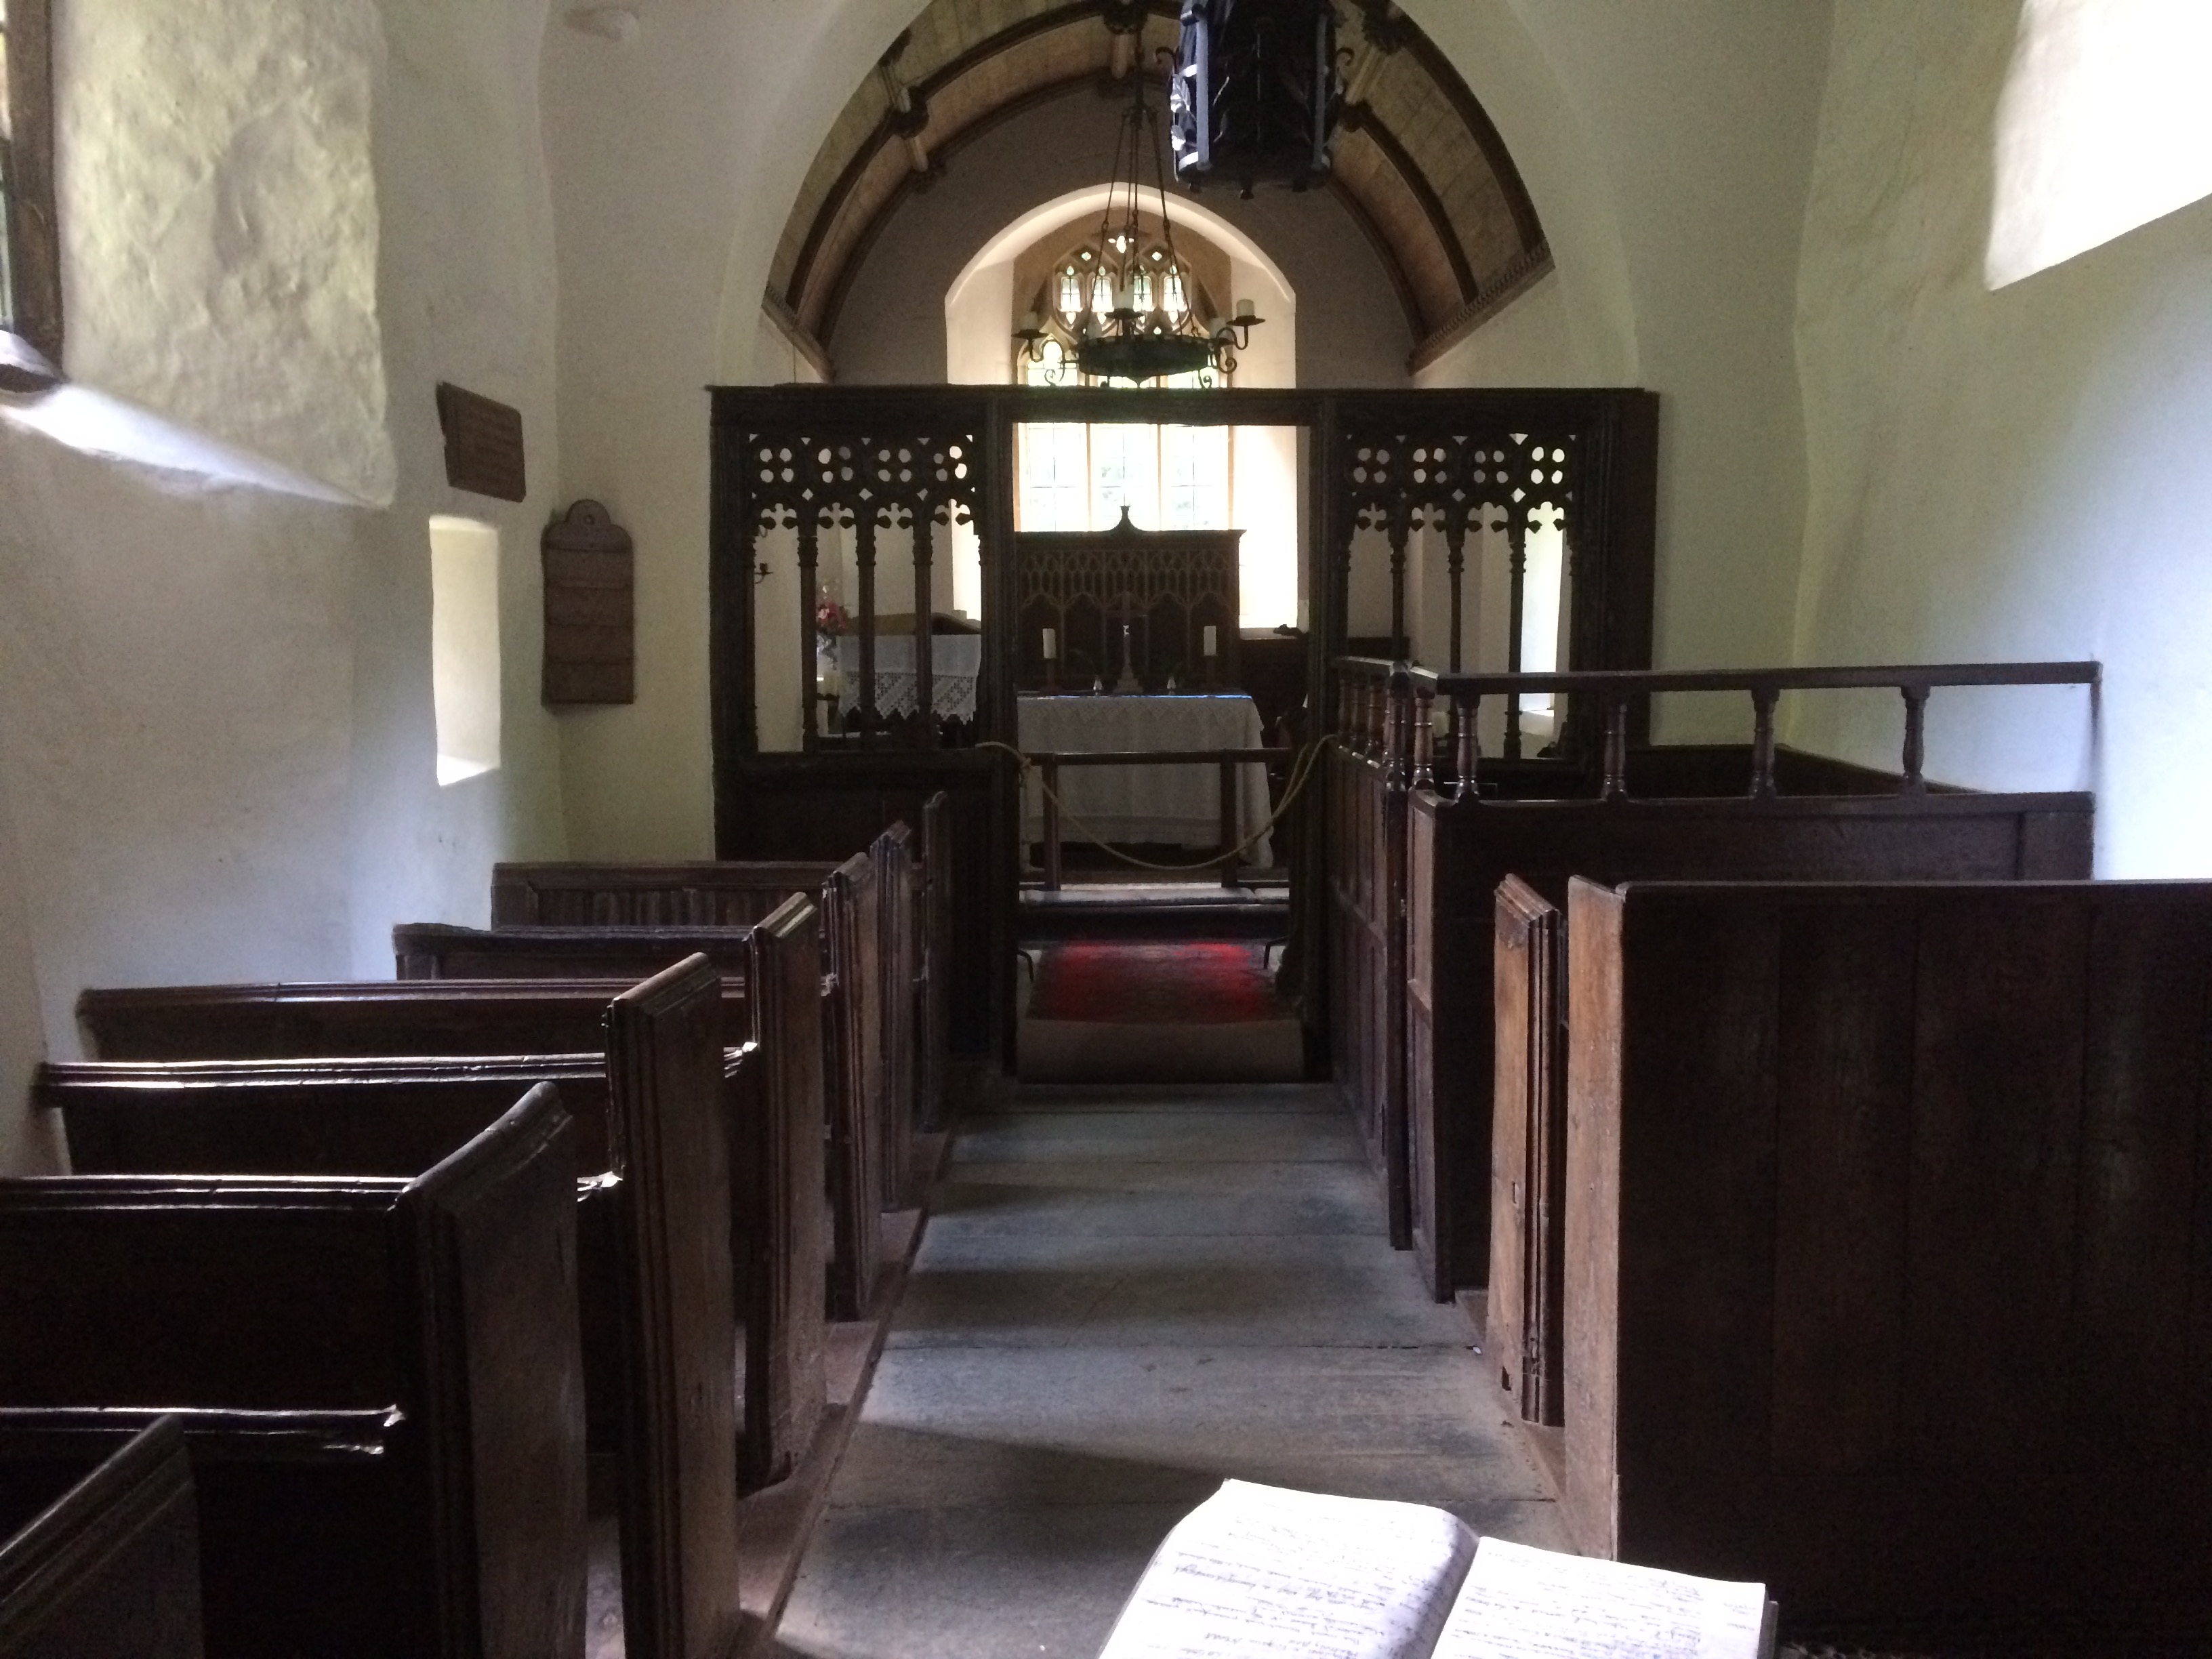 Culbone Church Interior